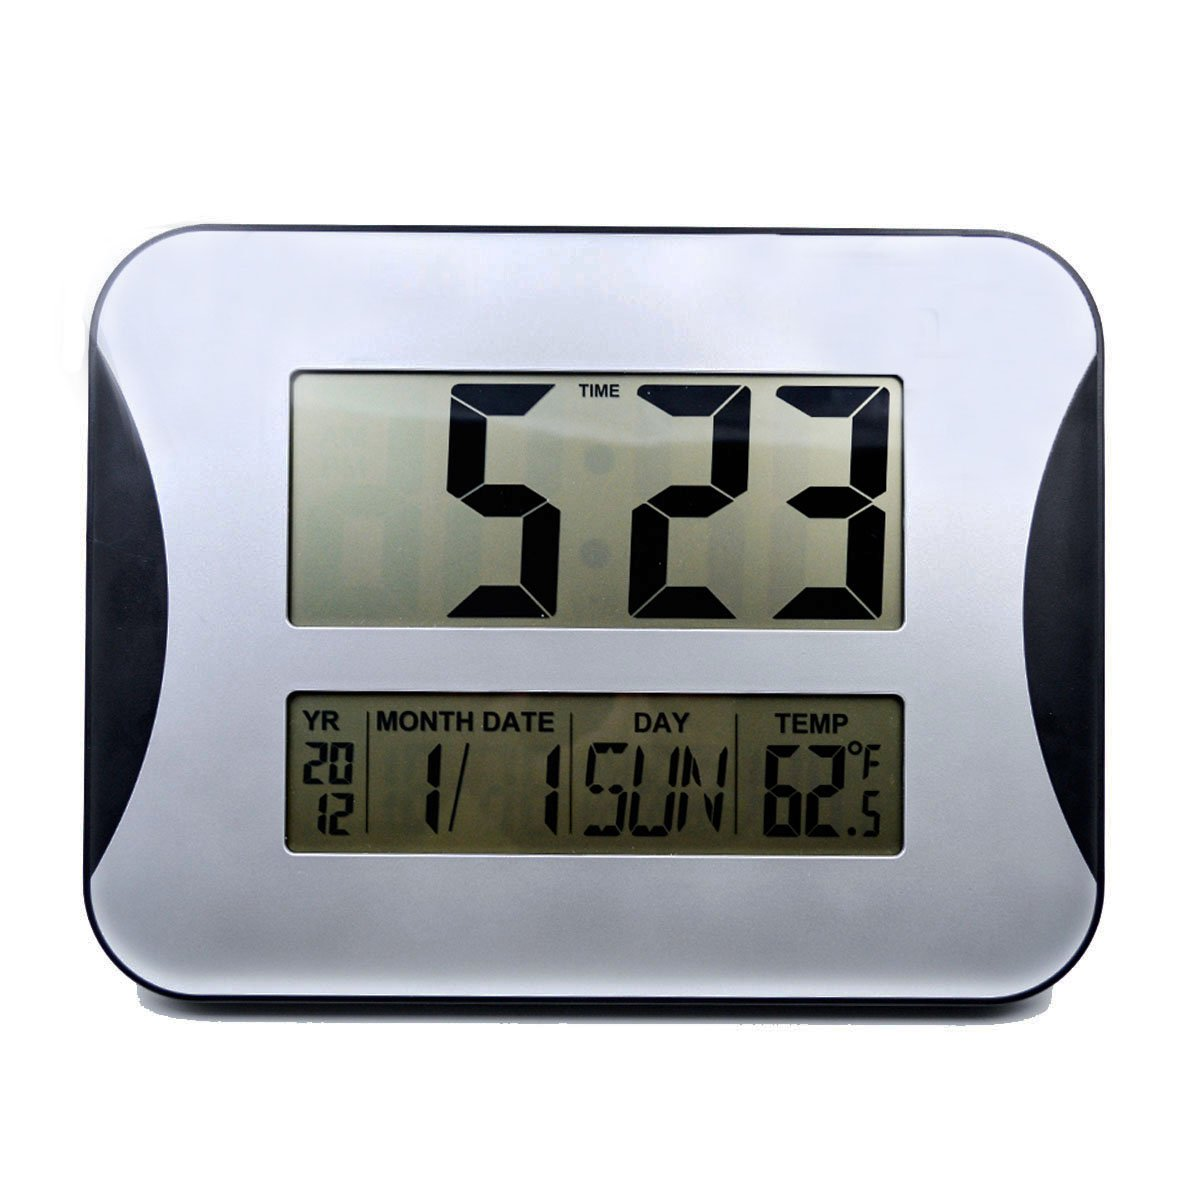 digital office clocks. Hippih Large LCD Digital Wall Clocks Electronic Alarm Big Digits Time Calendar Temperature Display Mountable Bedside Desk Clock For Room Office C